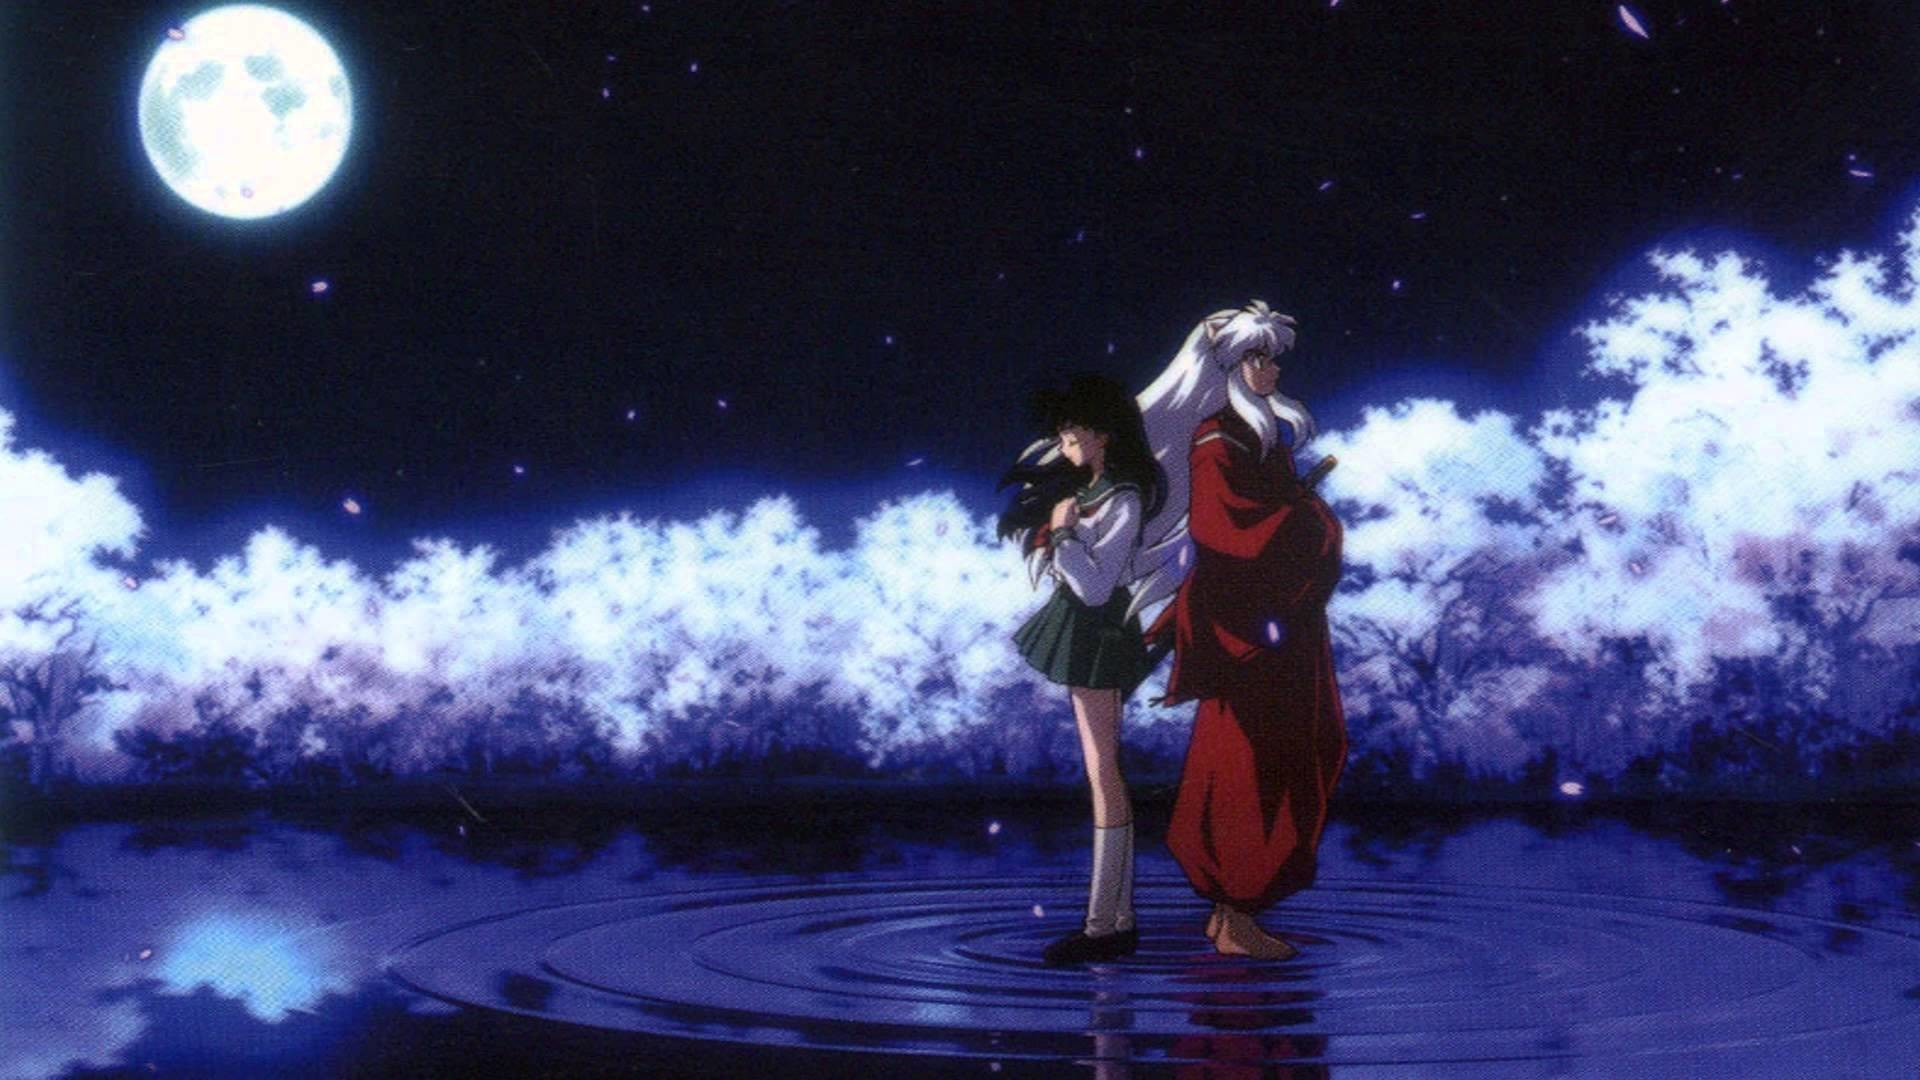 inuyasha wallpaper hd 69 images